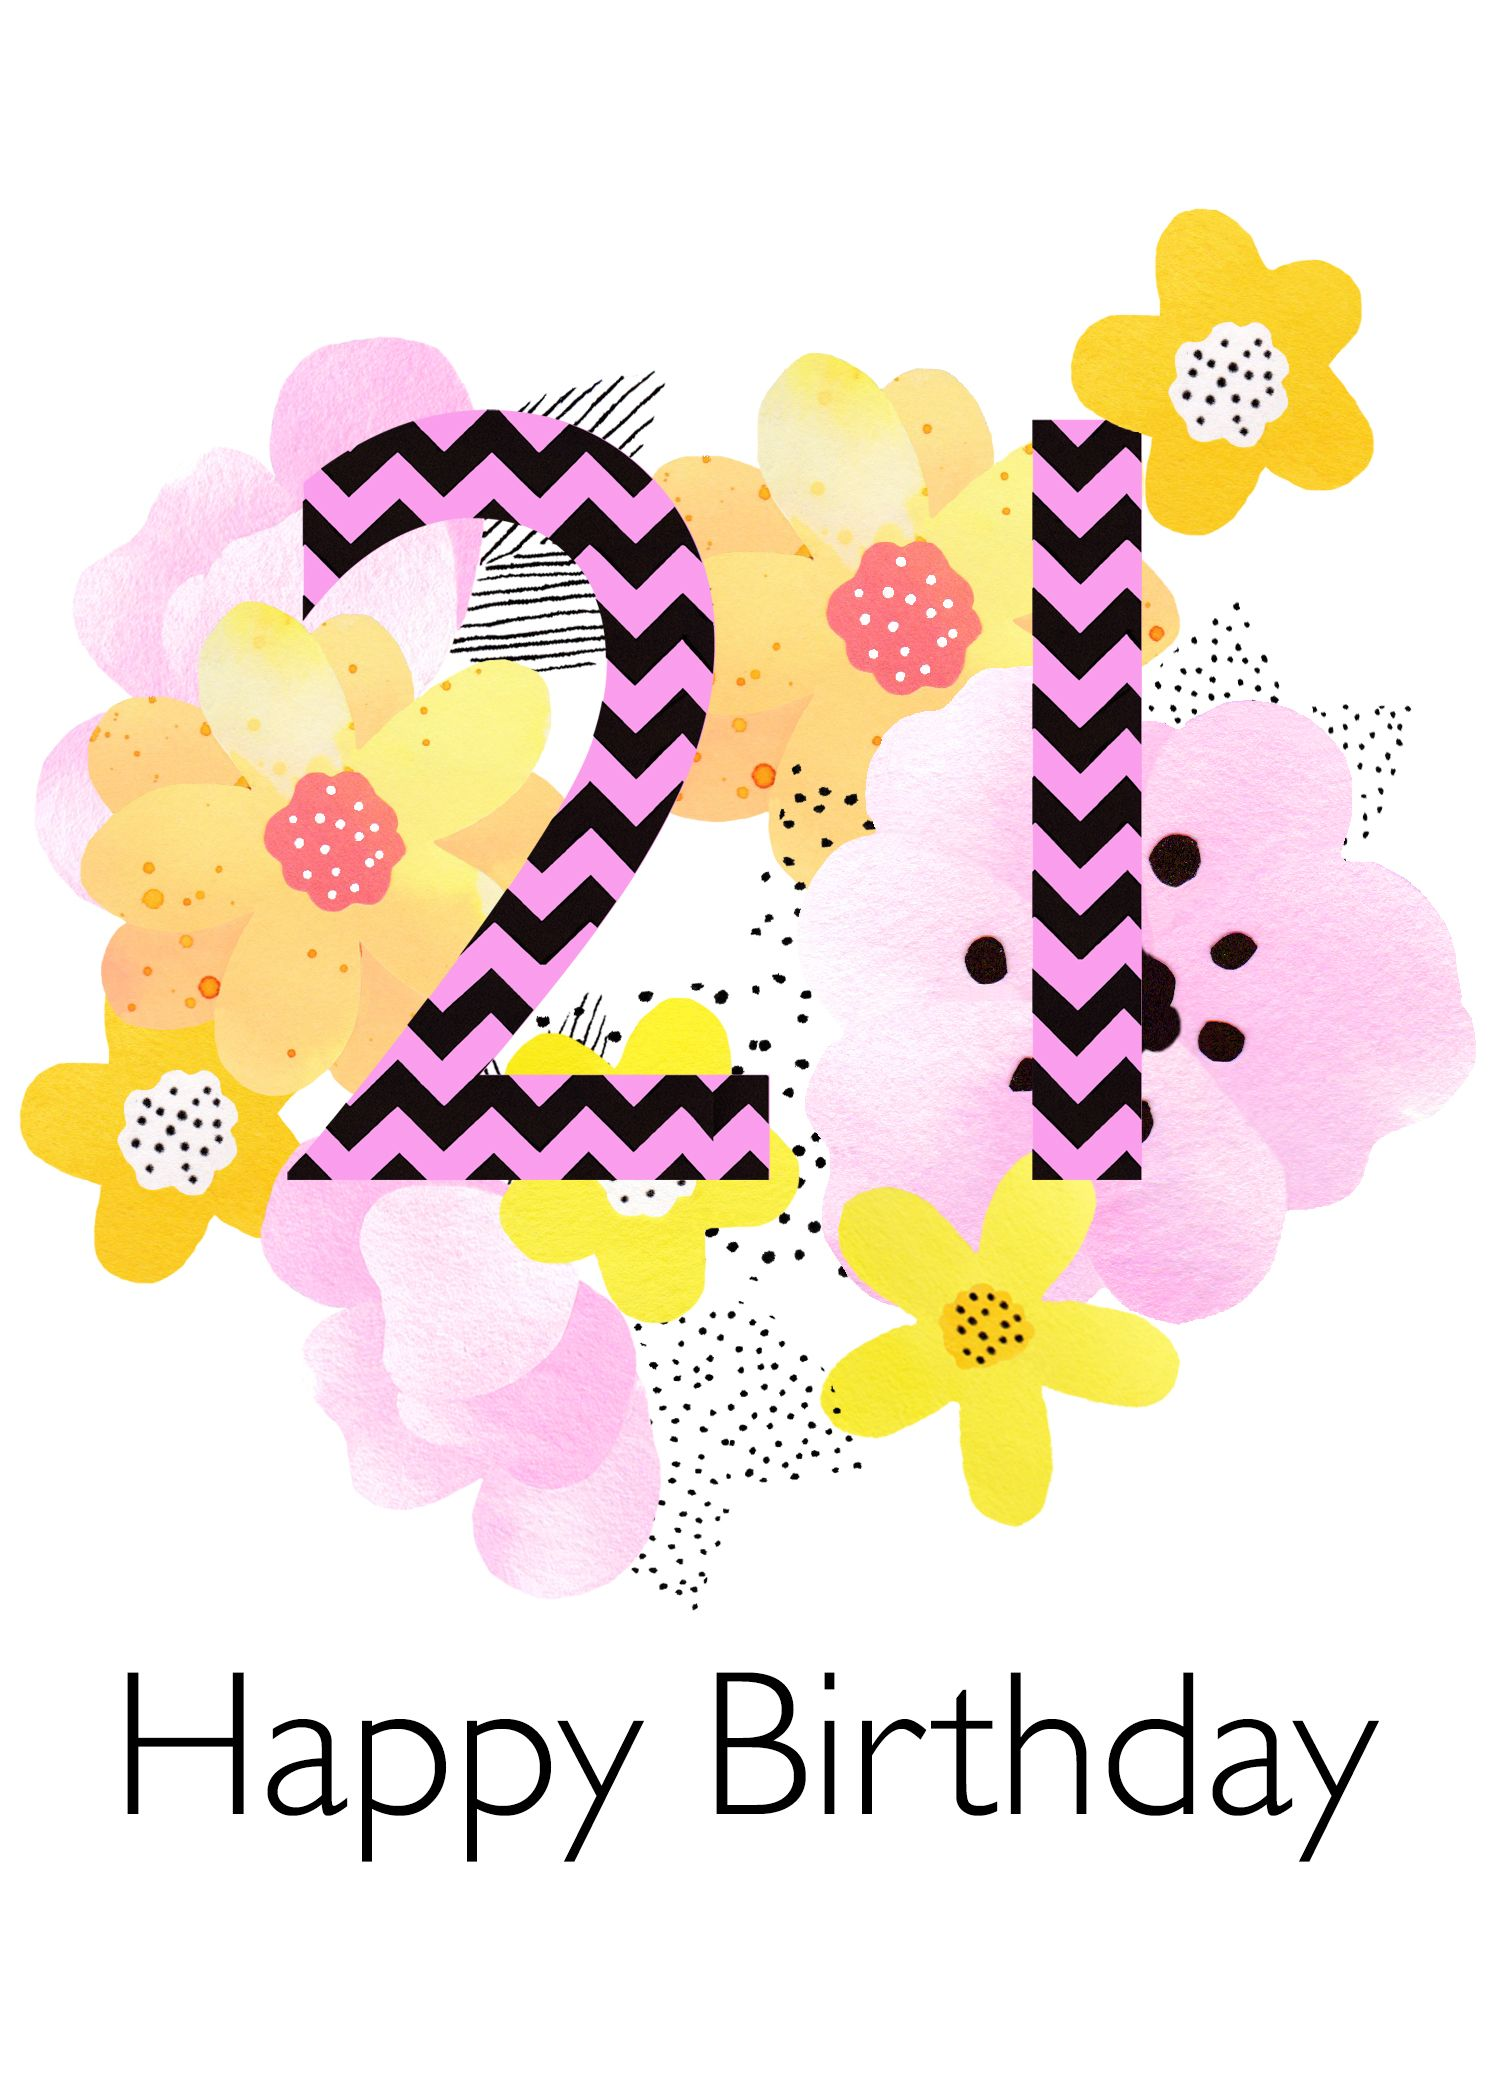 21st Birthday Card 2 50 Contemporary Floral Design Blank Card By Between Sisters Studio 21st Birthday Cards Birthday Cards Happy 2nd Birthday